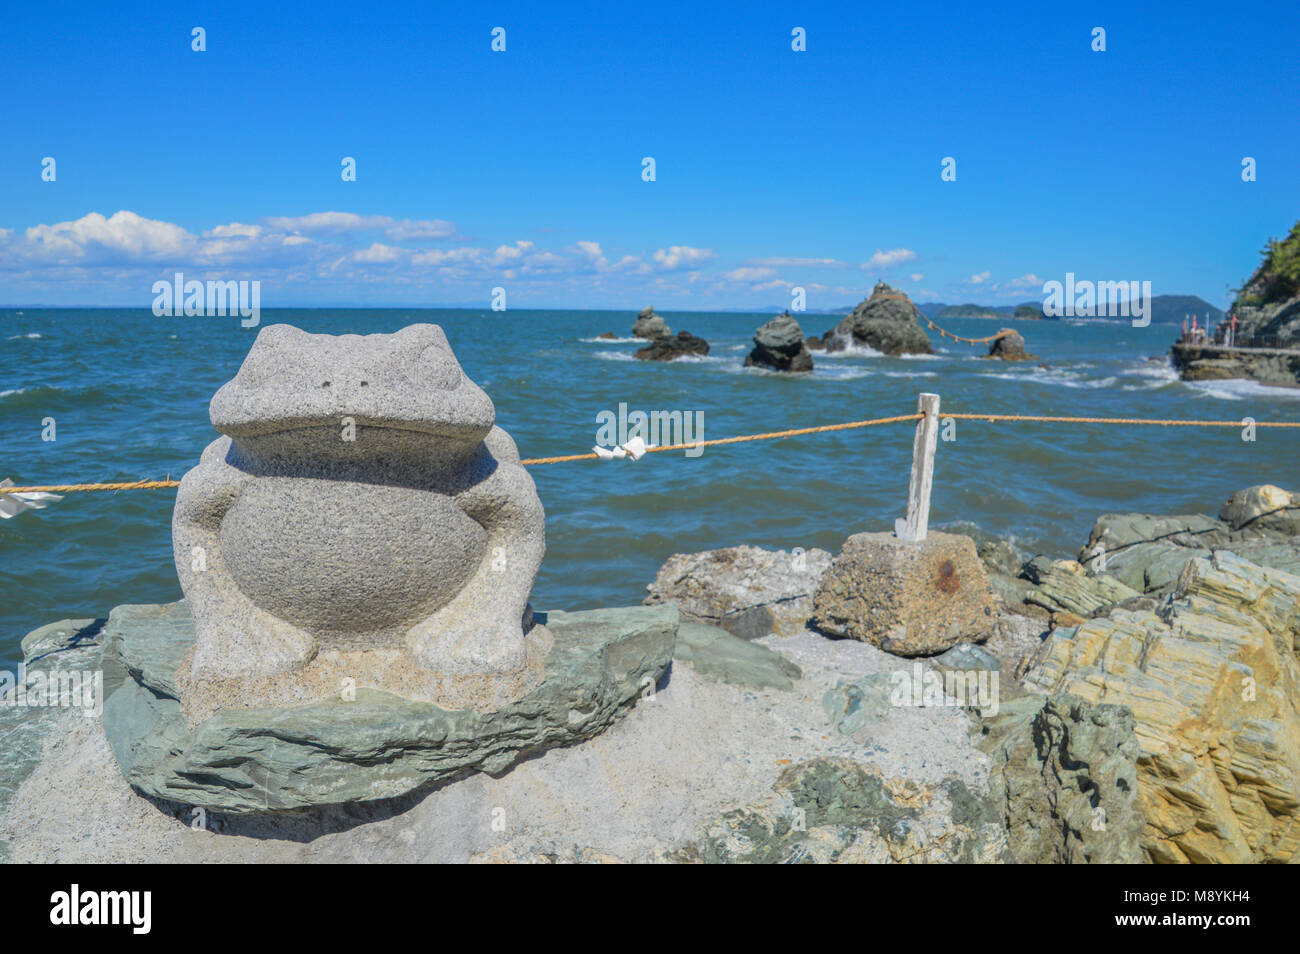 Frog Statue In Front Of Meoto Iwa (Wedded Rocks) At Ise Japan - Stock Image